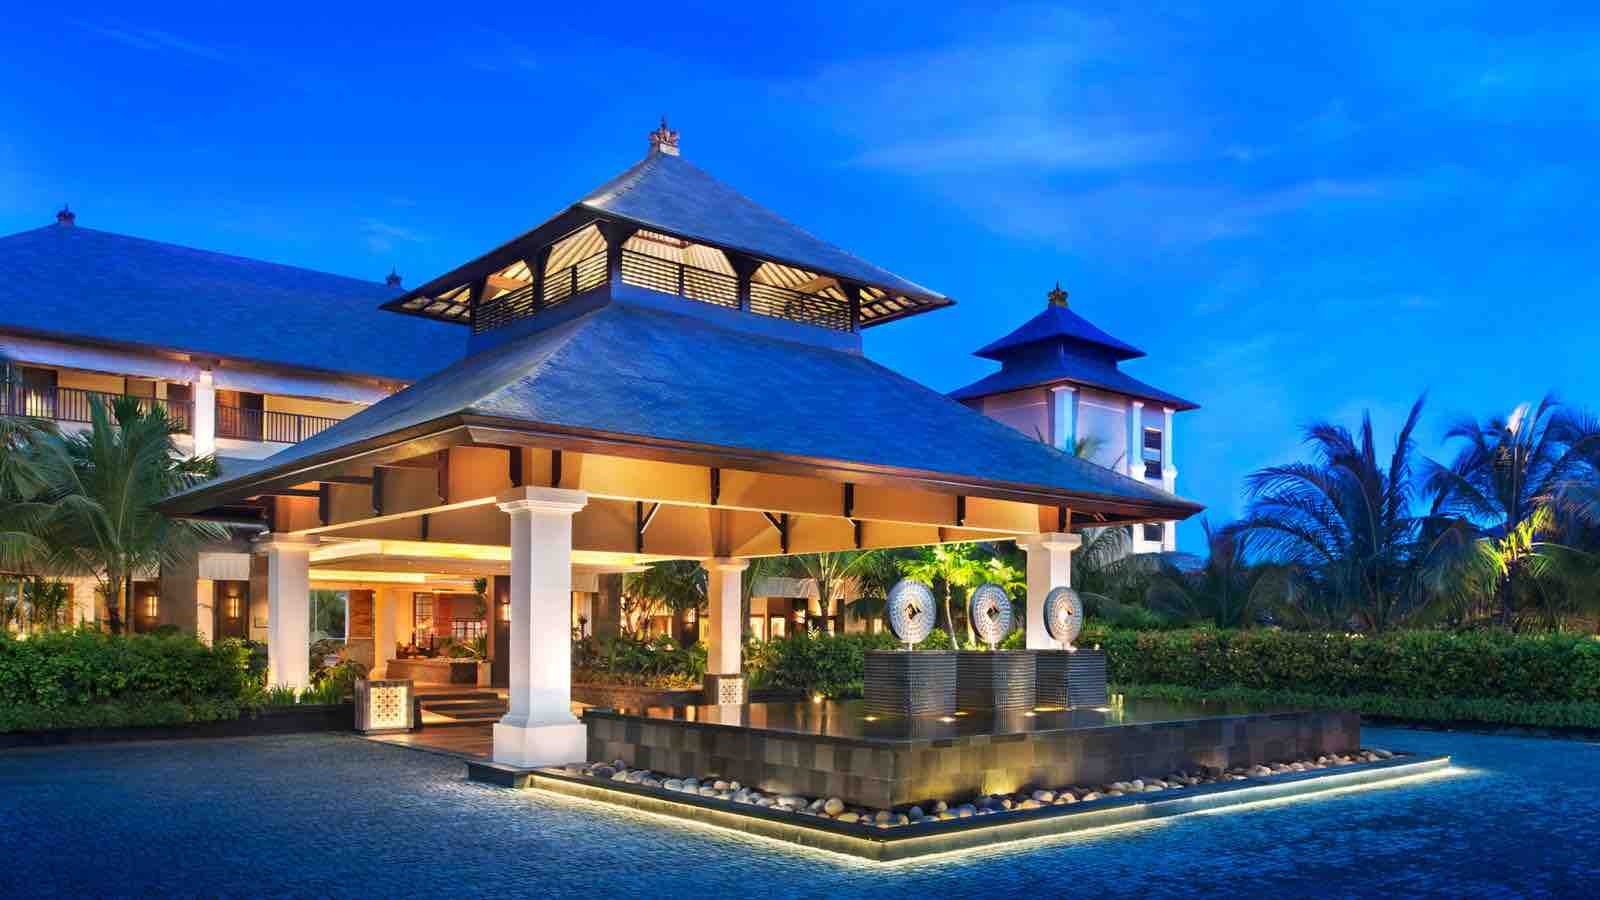 Top 25 hotels in indonesia easy planet travel for Great hotels in bali